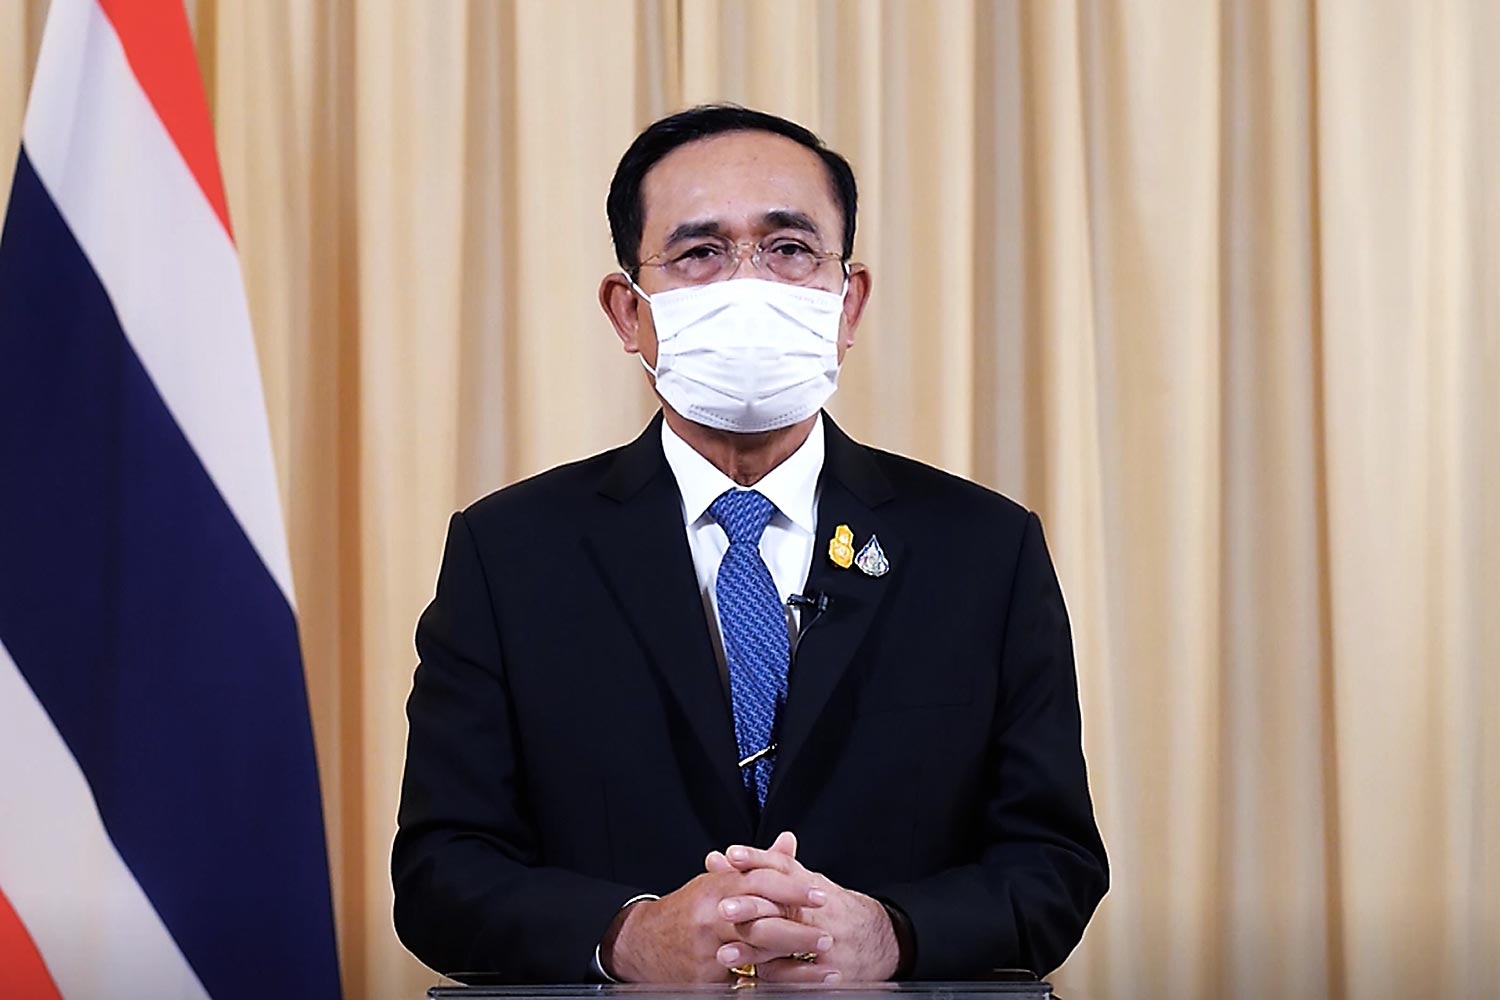 Prime Minister Prayut Chan-o-cha delivers a speech during the International Conference on the Future of Asia, an event organised by Nikkei, via a teleconference system at Government House.(Government House photo)